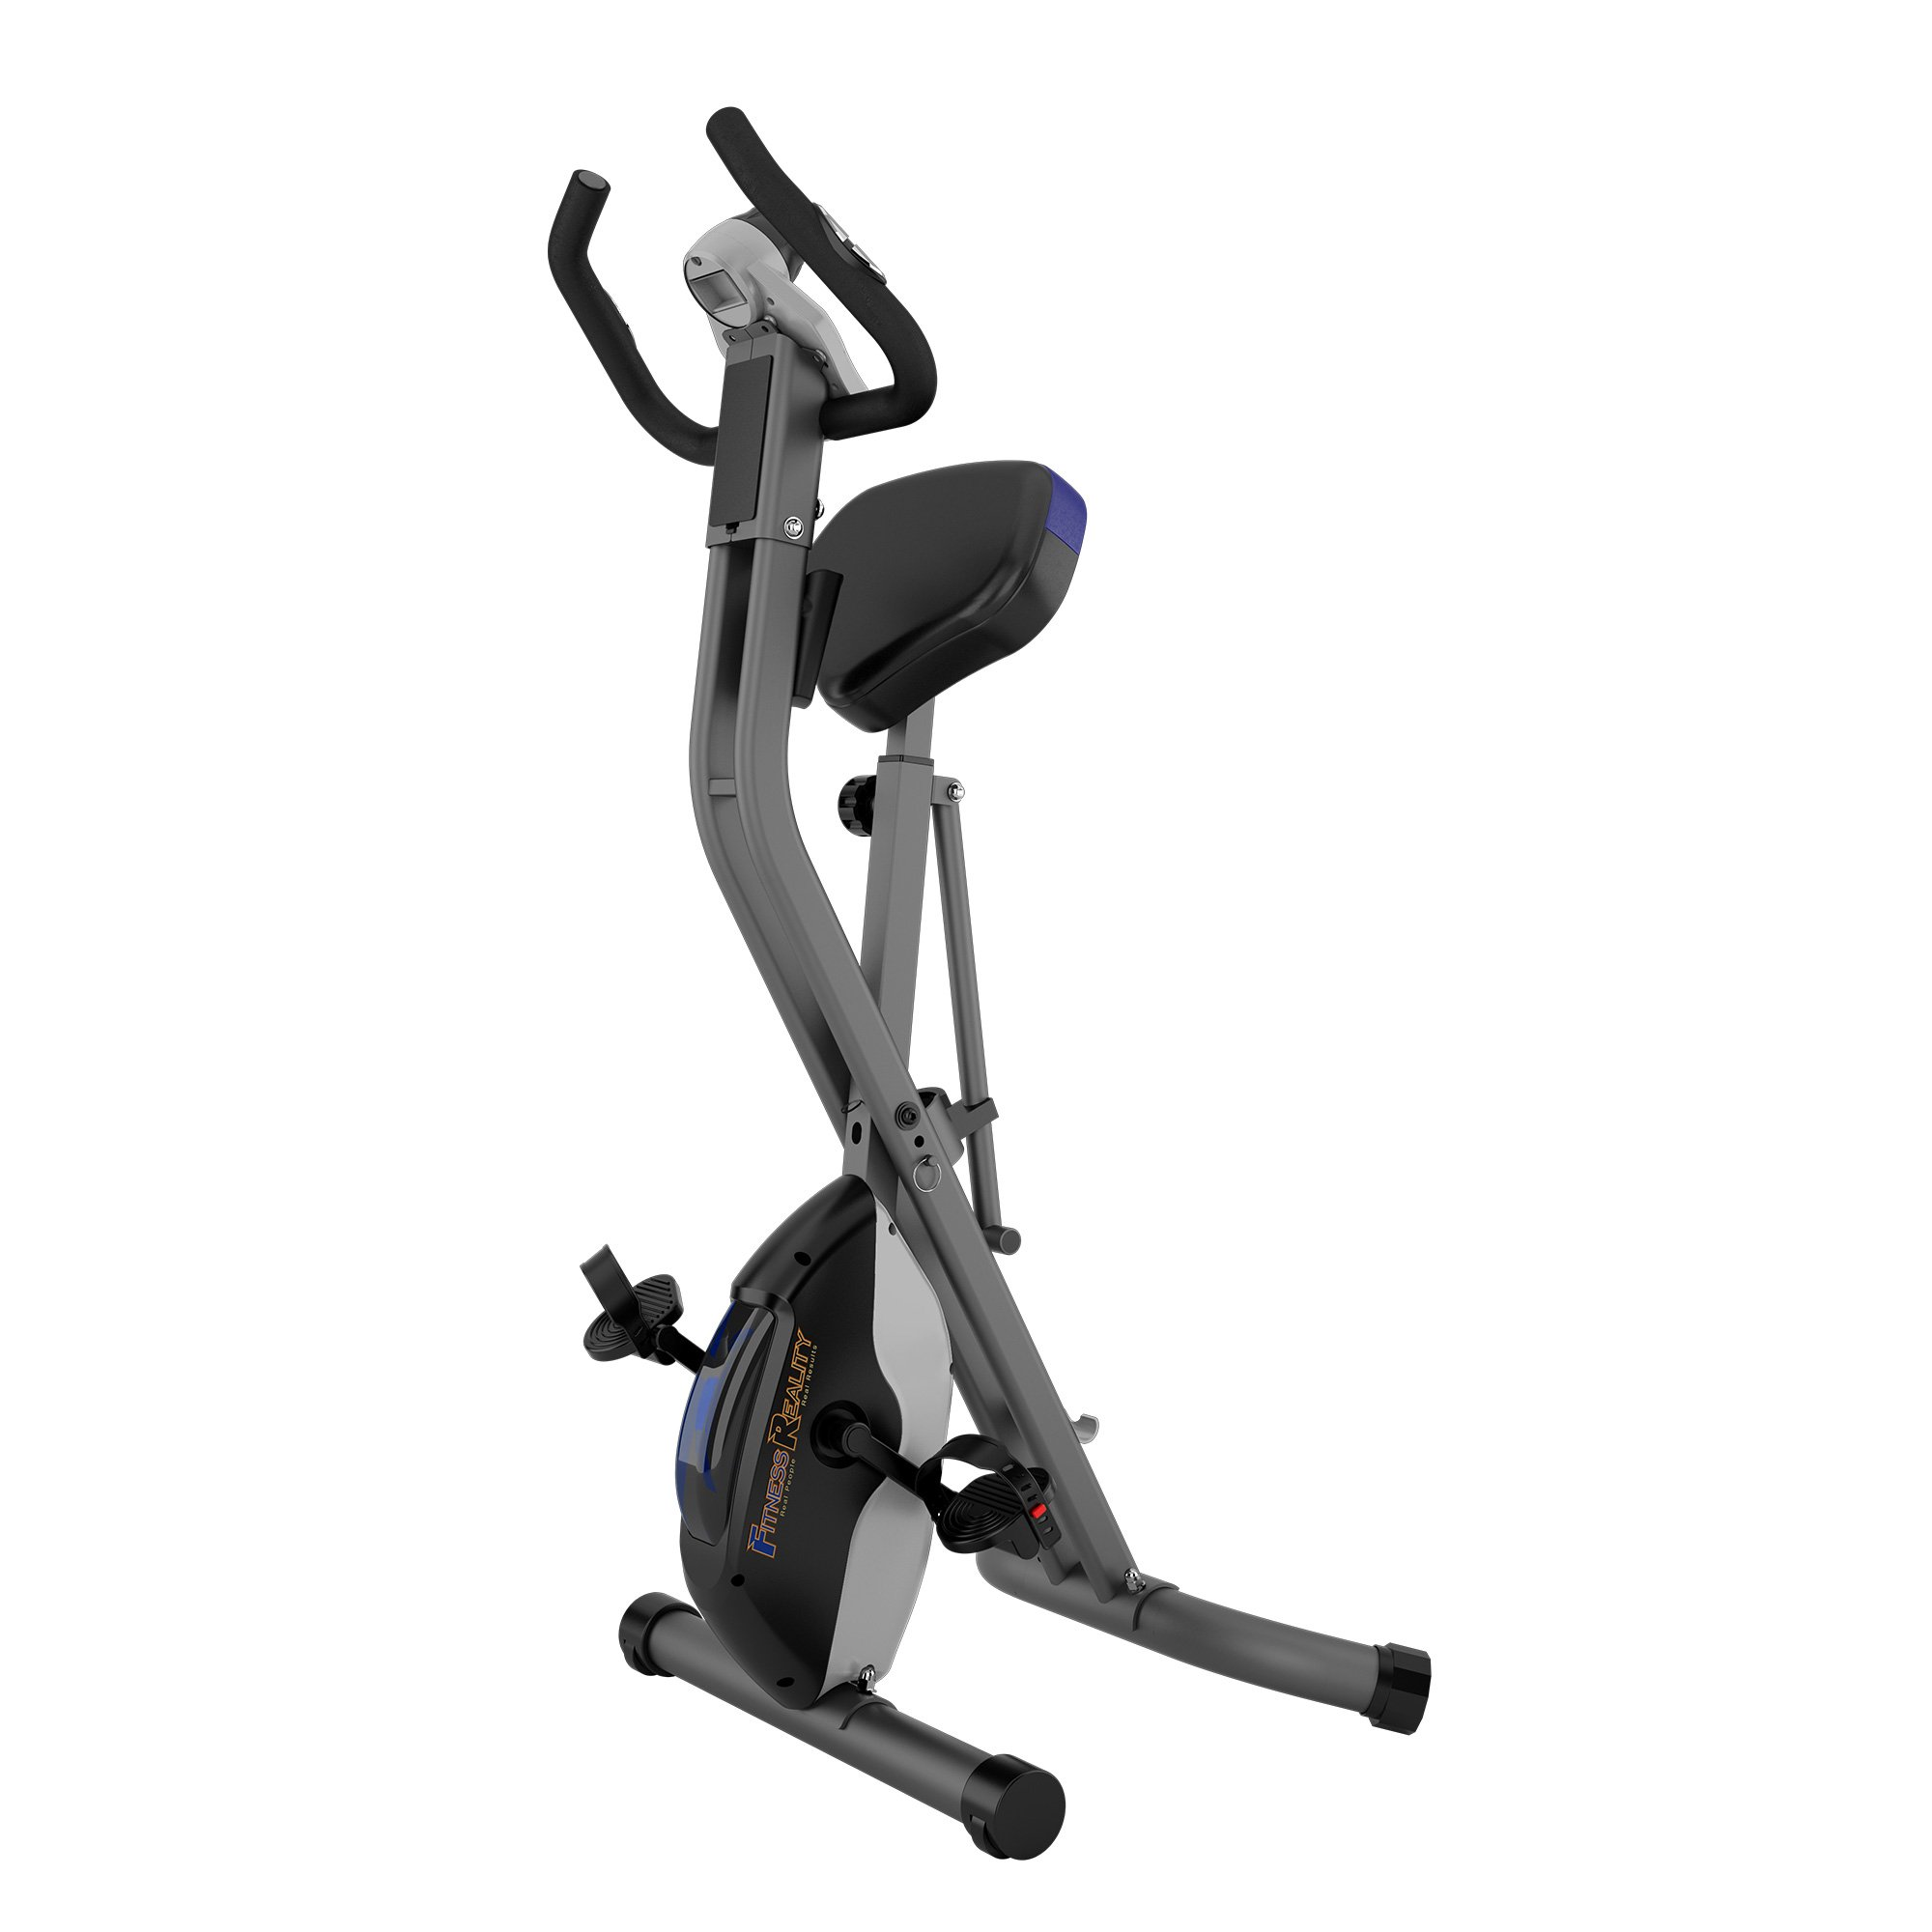 Fitness Reality U2500 Super Max Foldable Magnetic Upright Bike, 400 Lbs by Fitness Reality (Image #5)